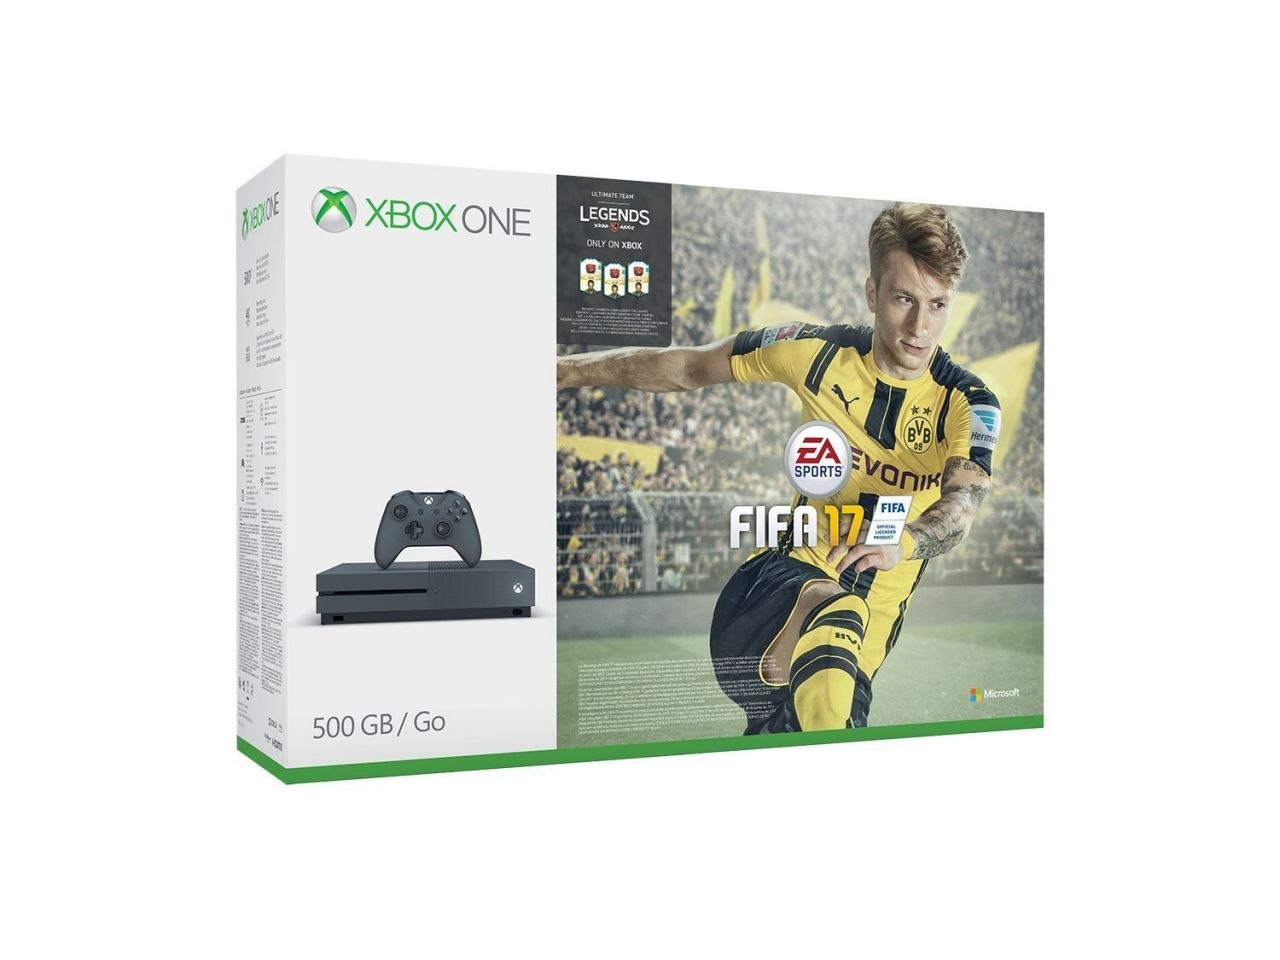 Pack Console Xbox One S 500 Go gris + FIFA 17 + Ea Access 1 Mois - Storm Grey Exclusif Amazon